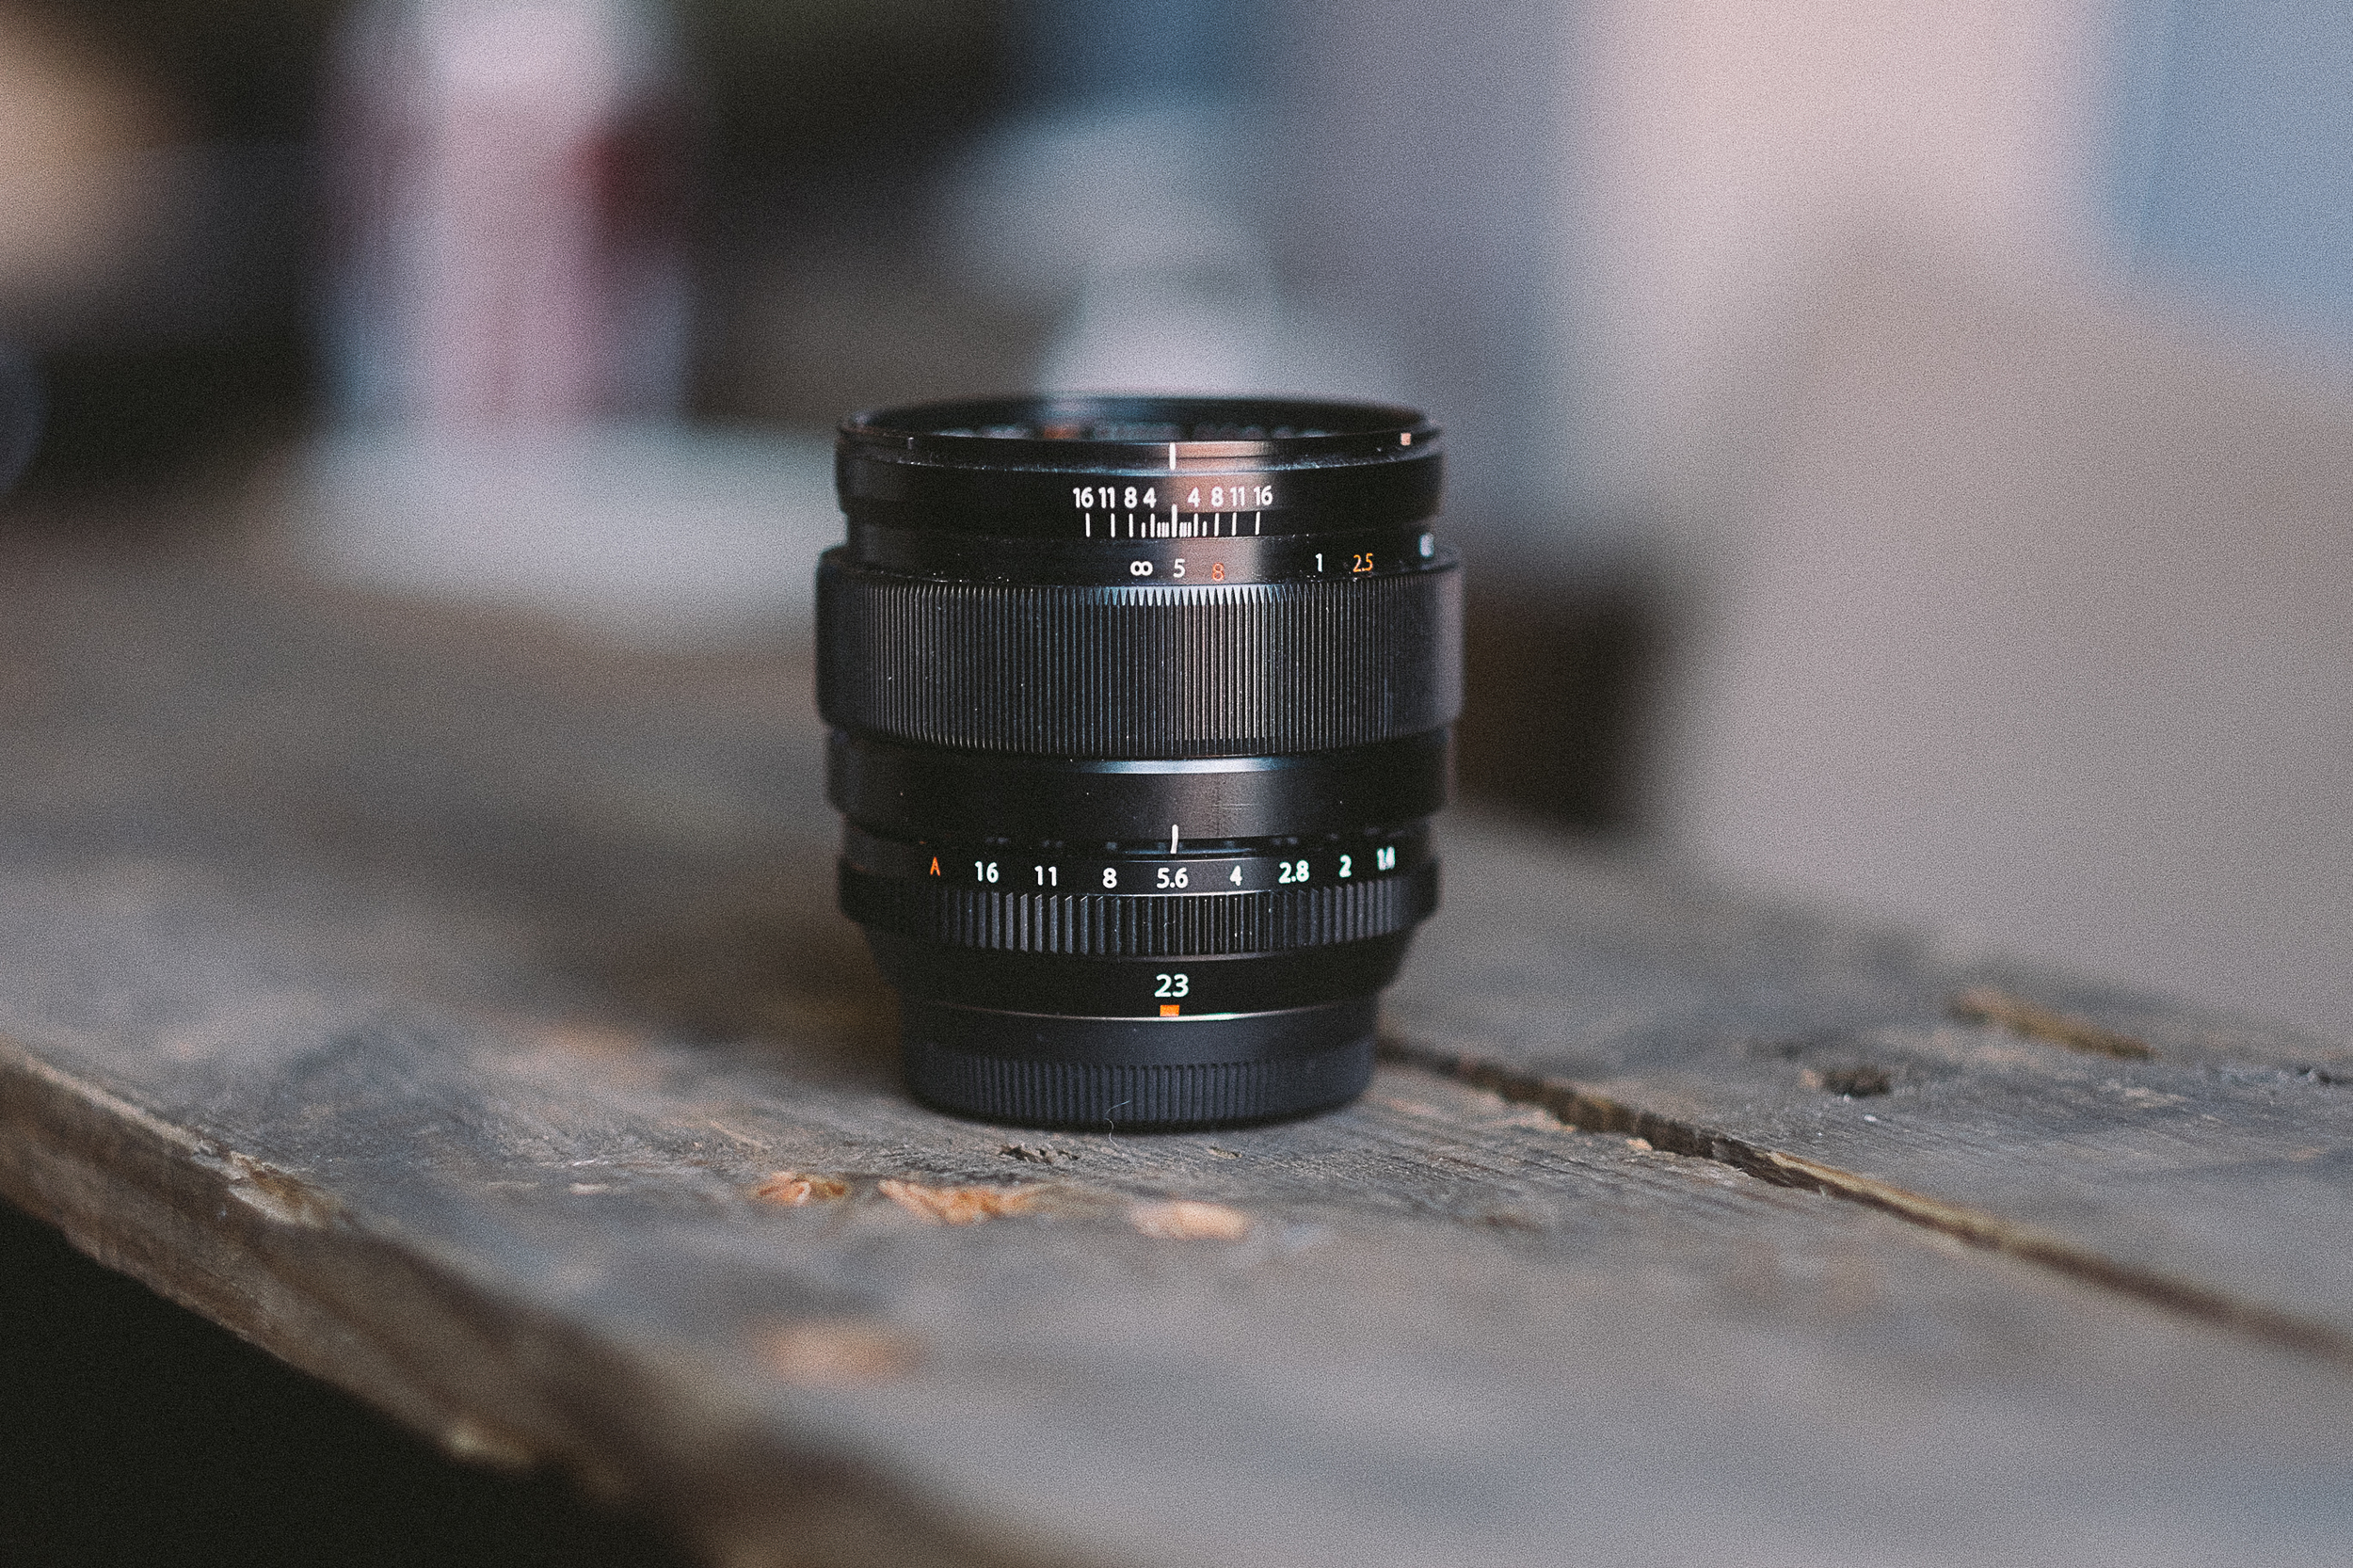 The Fuji 23mm - A great performer